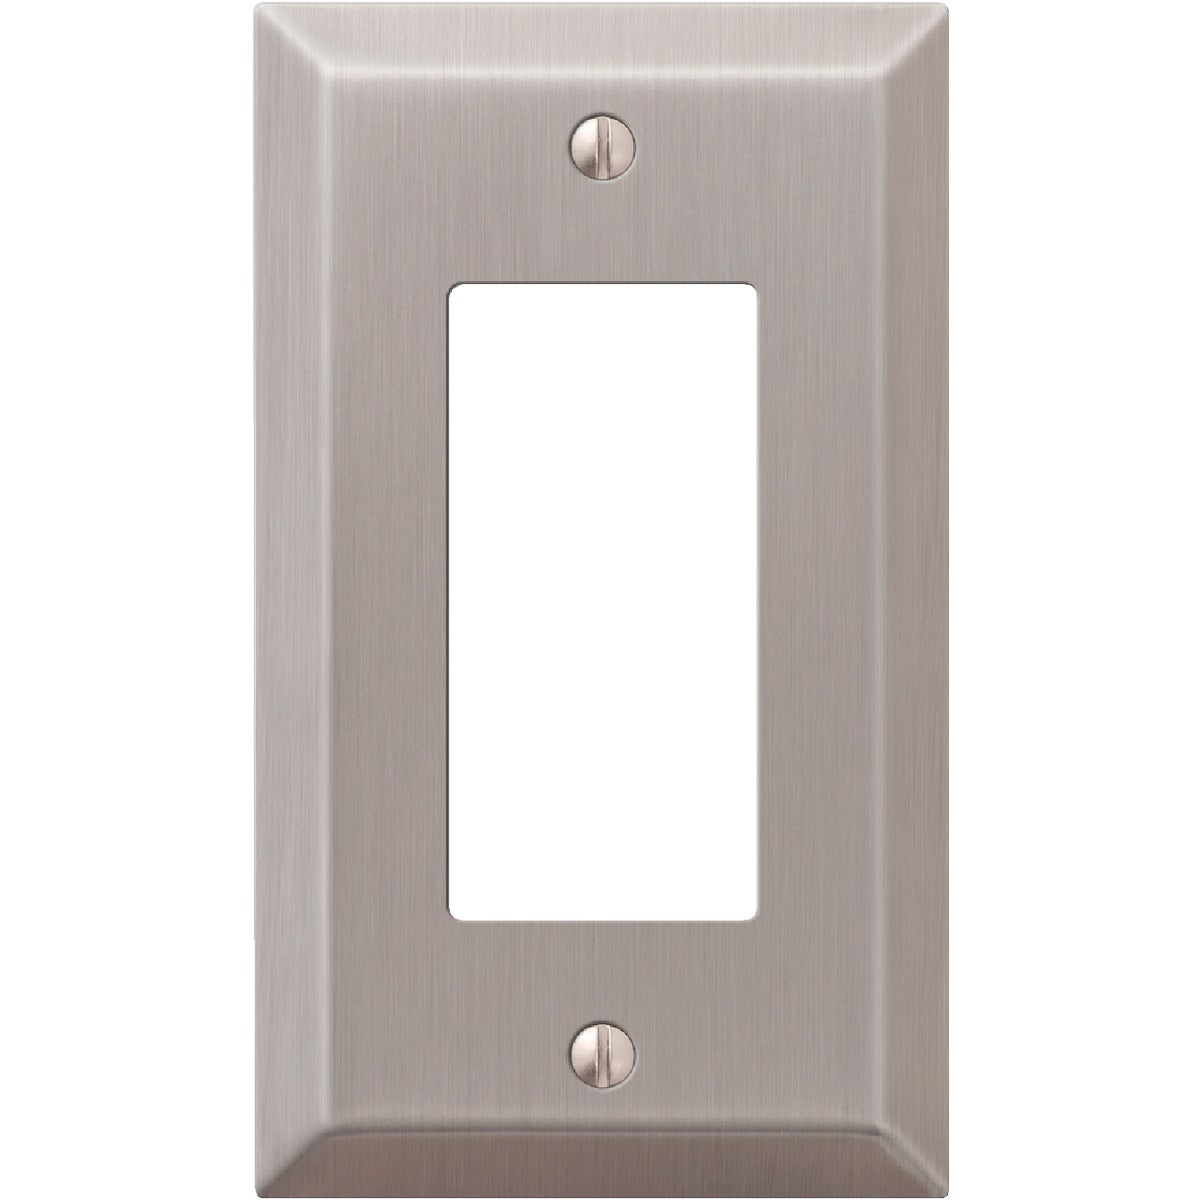 BR NICKEL GFI WALLPLATE - 9PT117 by Jackson Deerfield Mf